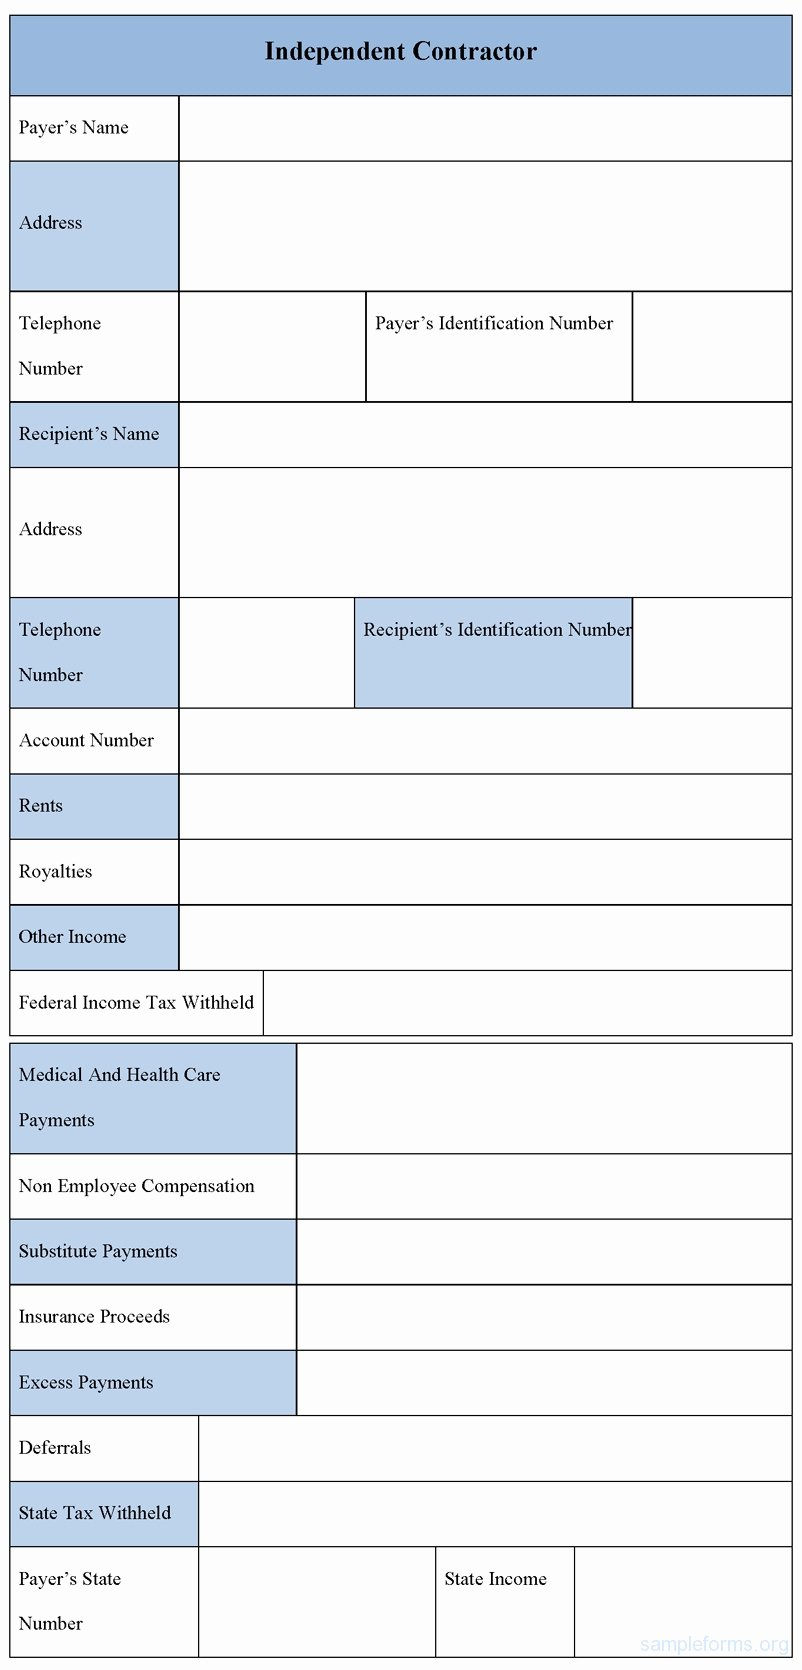 Independent Contractor Billing Template Inspirational Sample Independent Contractor Invoice Invoice Template Ideas